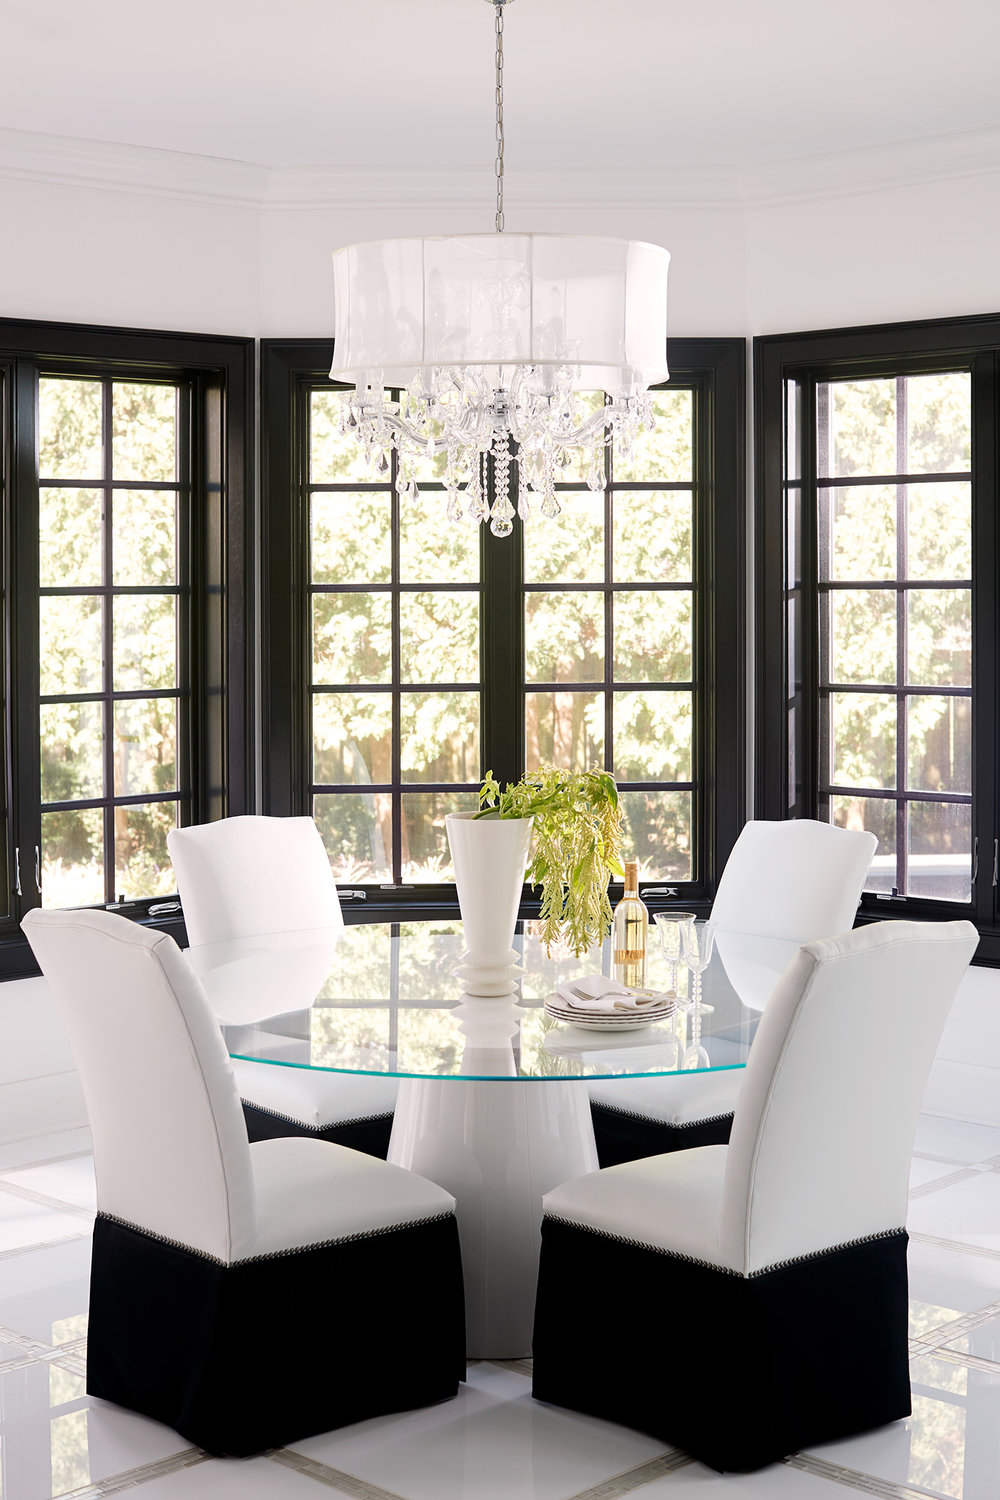 "<div class=""gallerytitle"">Bold Glamour<br><hr class=""gallerydivider""></div><div class=""gallerydescription"">Residential Design</div><br><div class=""gallerybutton"">VIEW</div>"